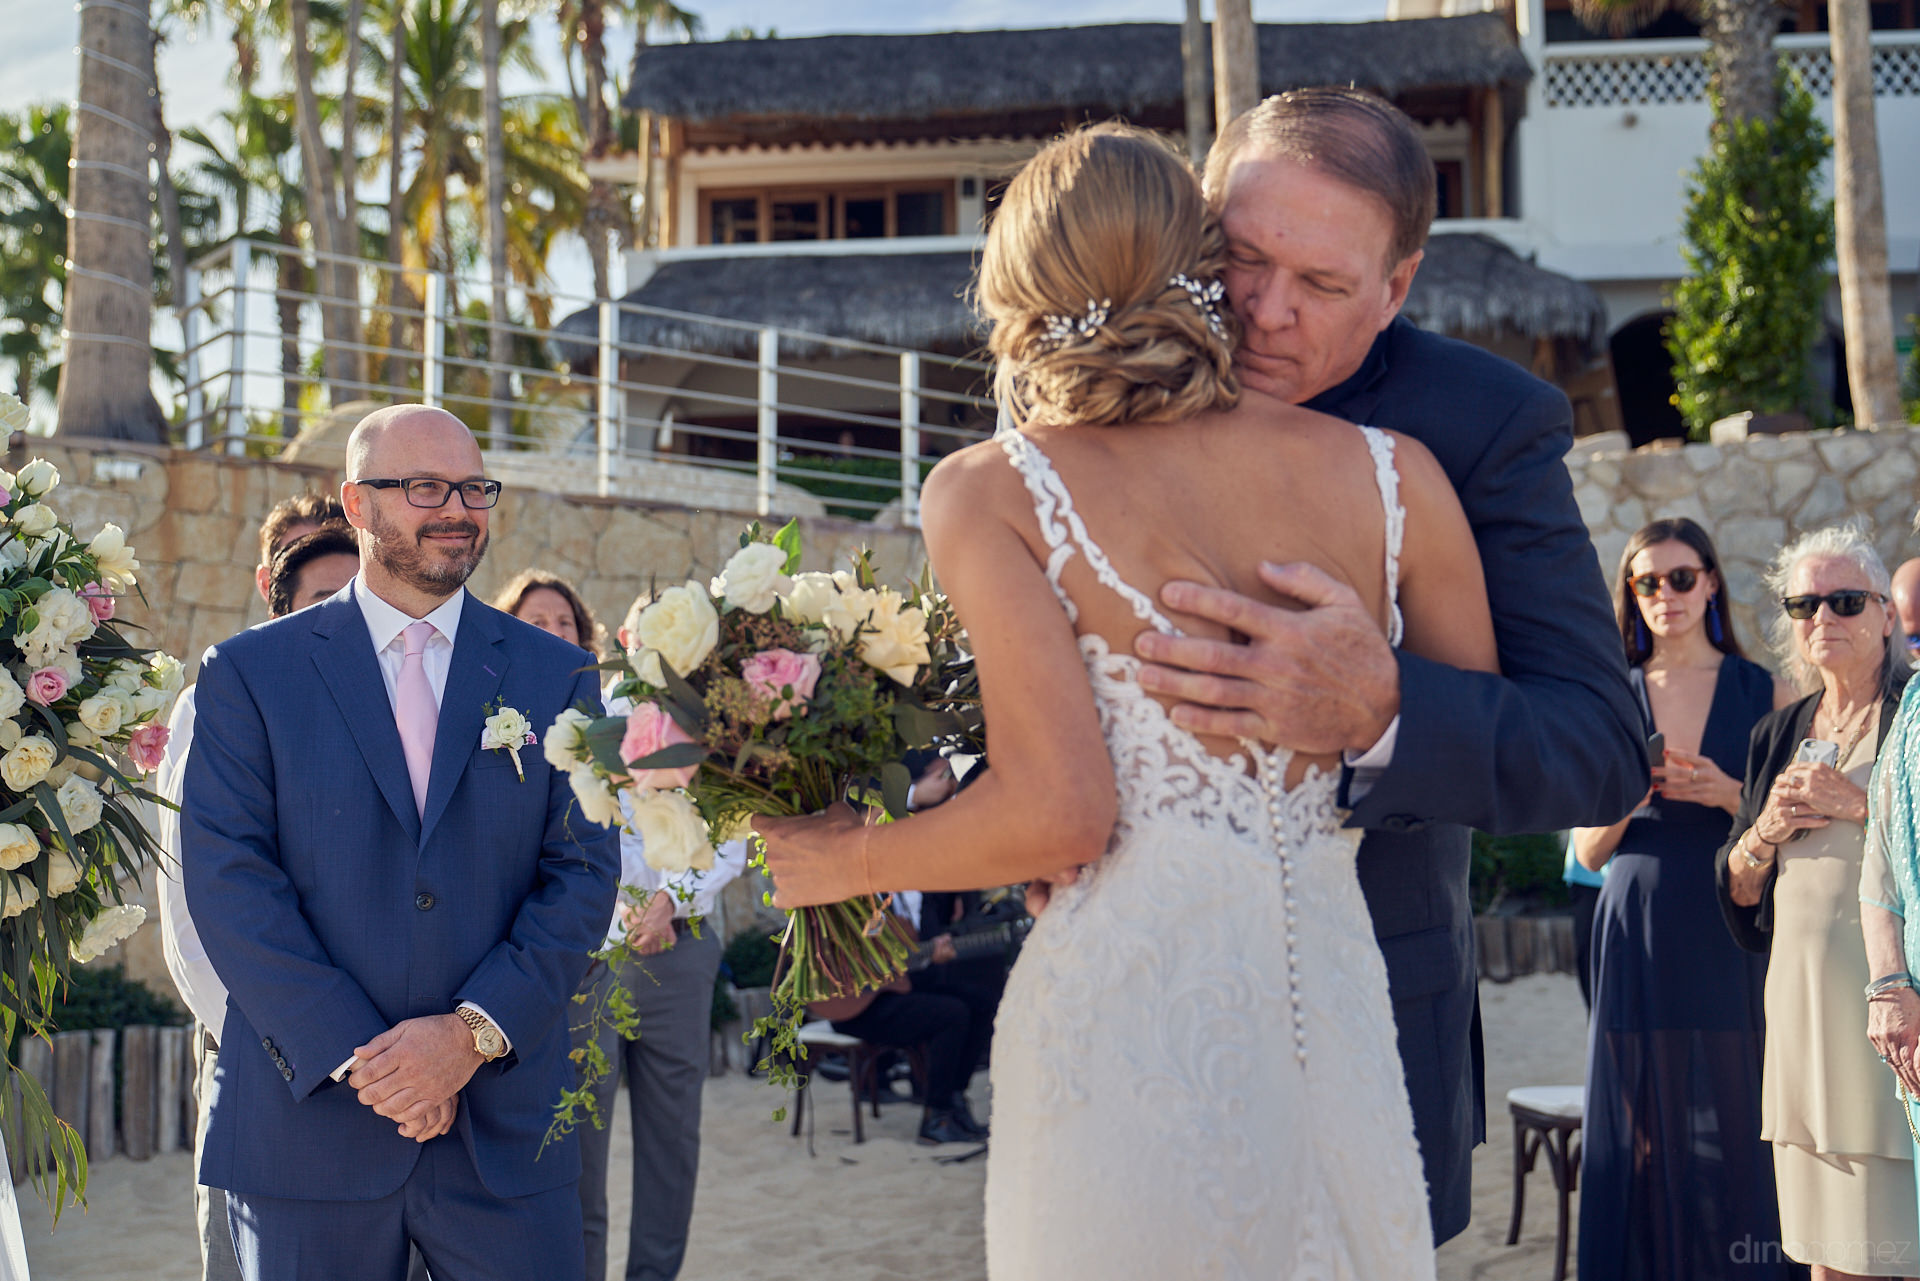 Los Cabos Wedding Videographer And Photographer Together - Mm